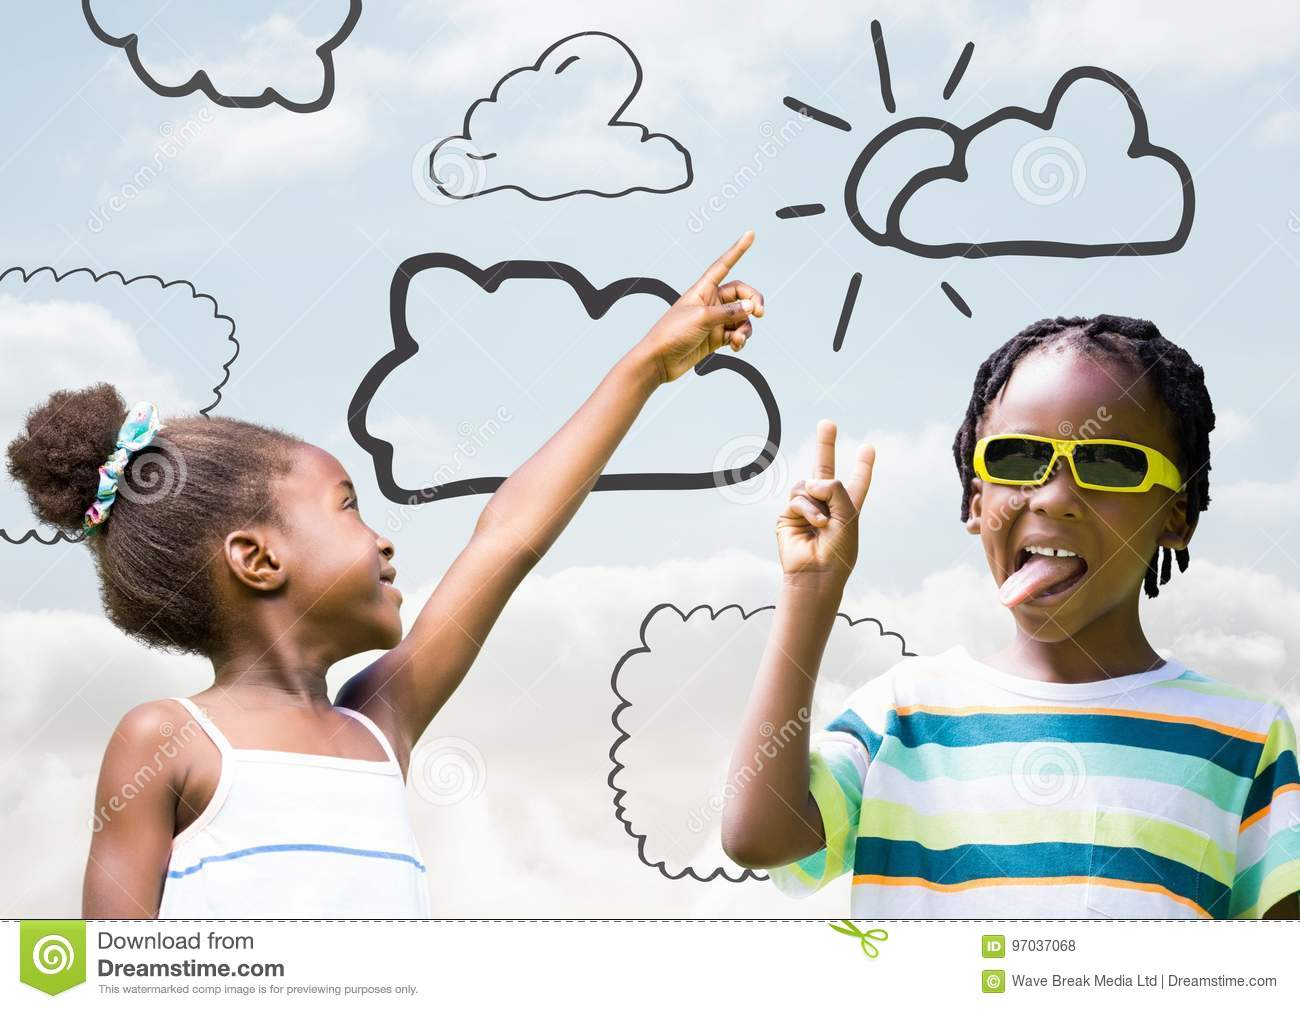 Kids pointing at sky and playing with cloud drawings